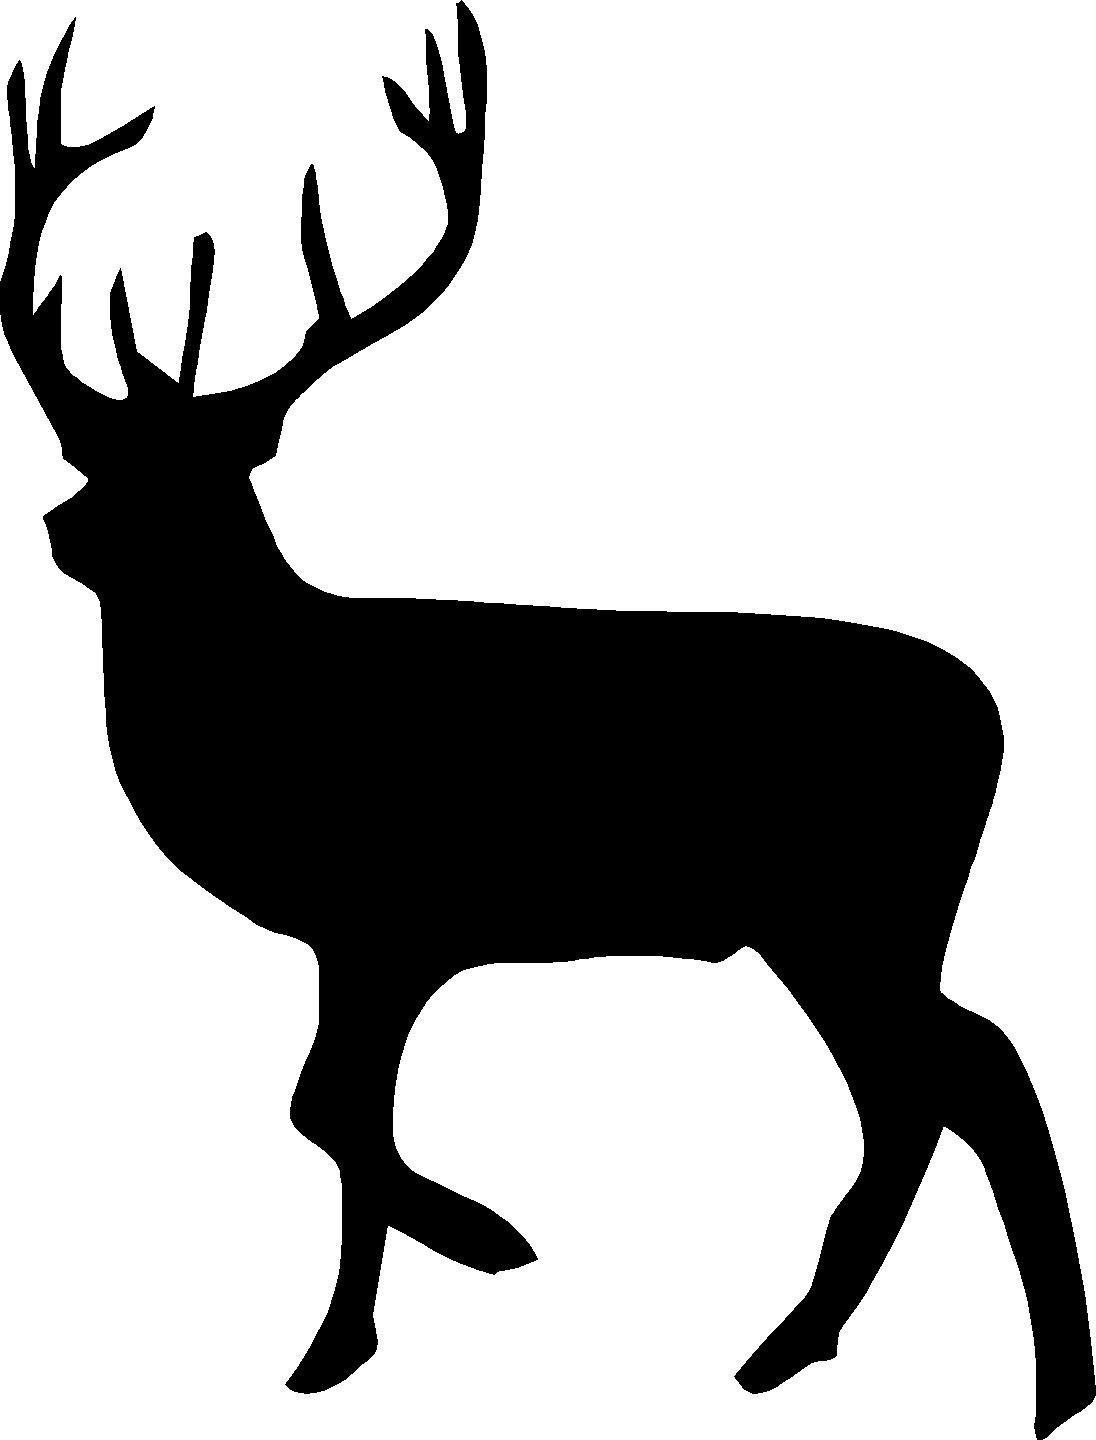 1096x1440 Best 15 Deer Silhouette Clip Art Whitetail Images Striking Clipart